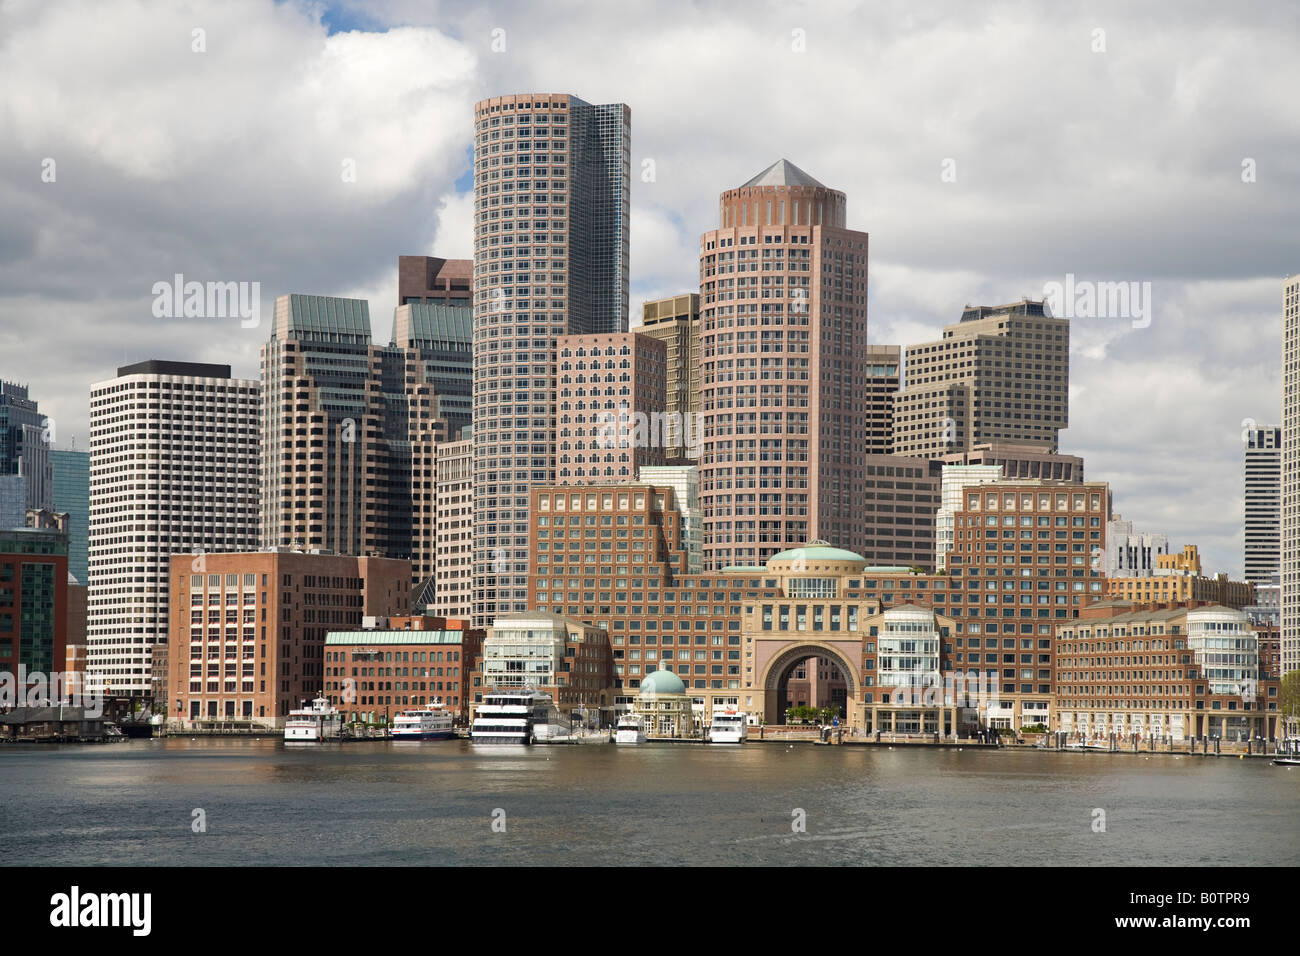 Toits de Boston et du port Photo Stock